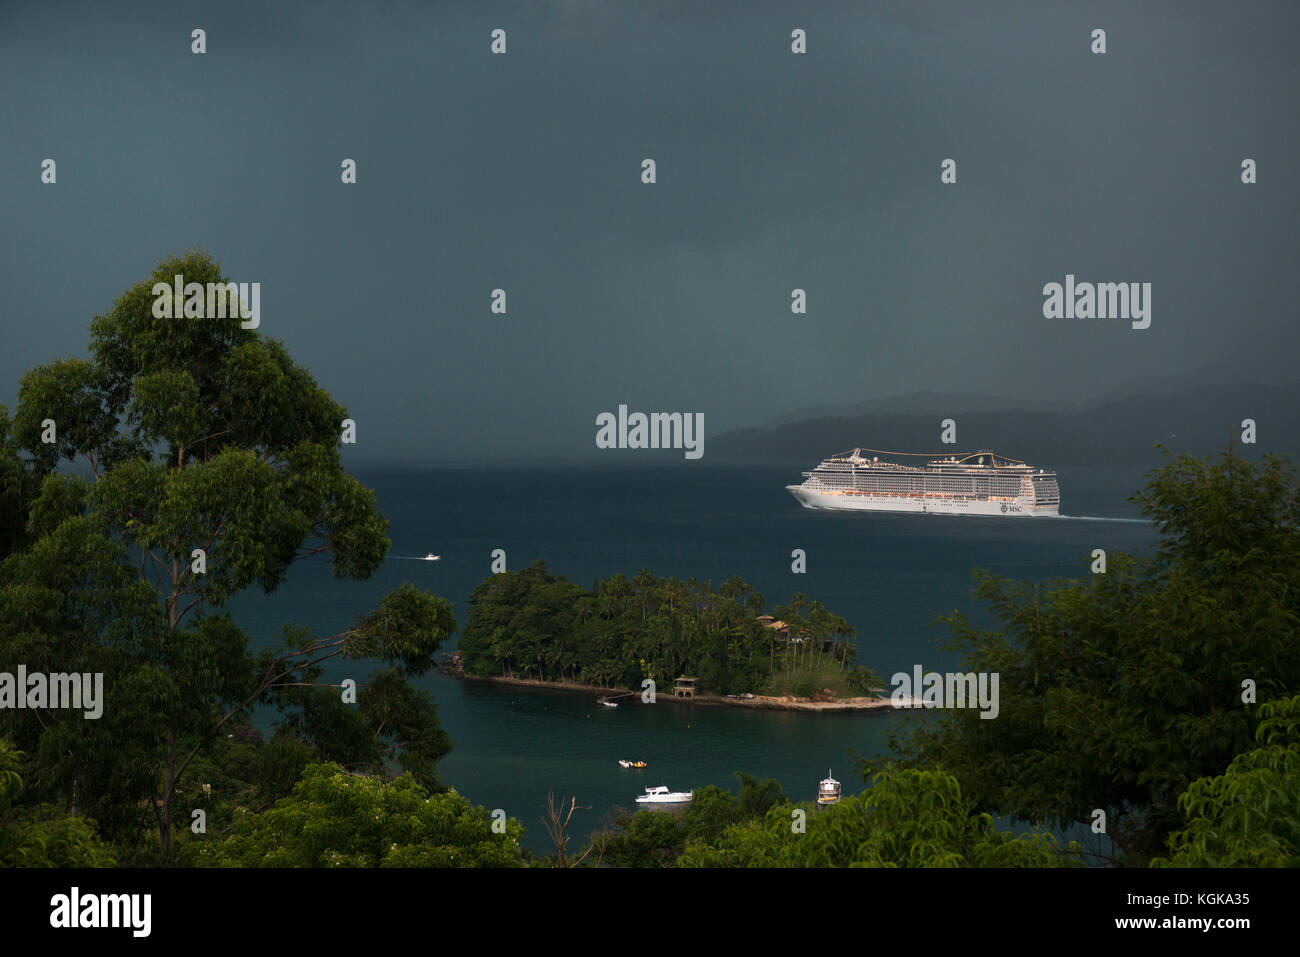 Cruise ship facing an approaching storm at Canal de São Sebastião, Ilhabela, Brazil - Stock Image